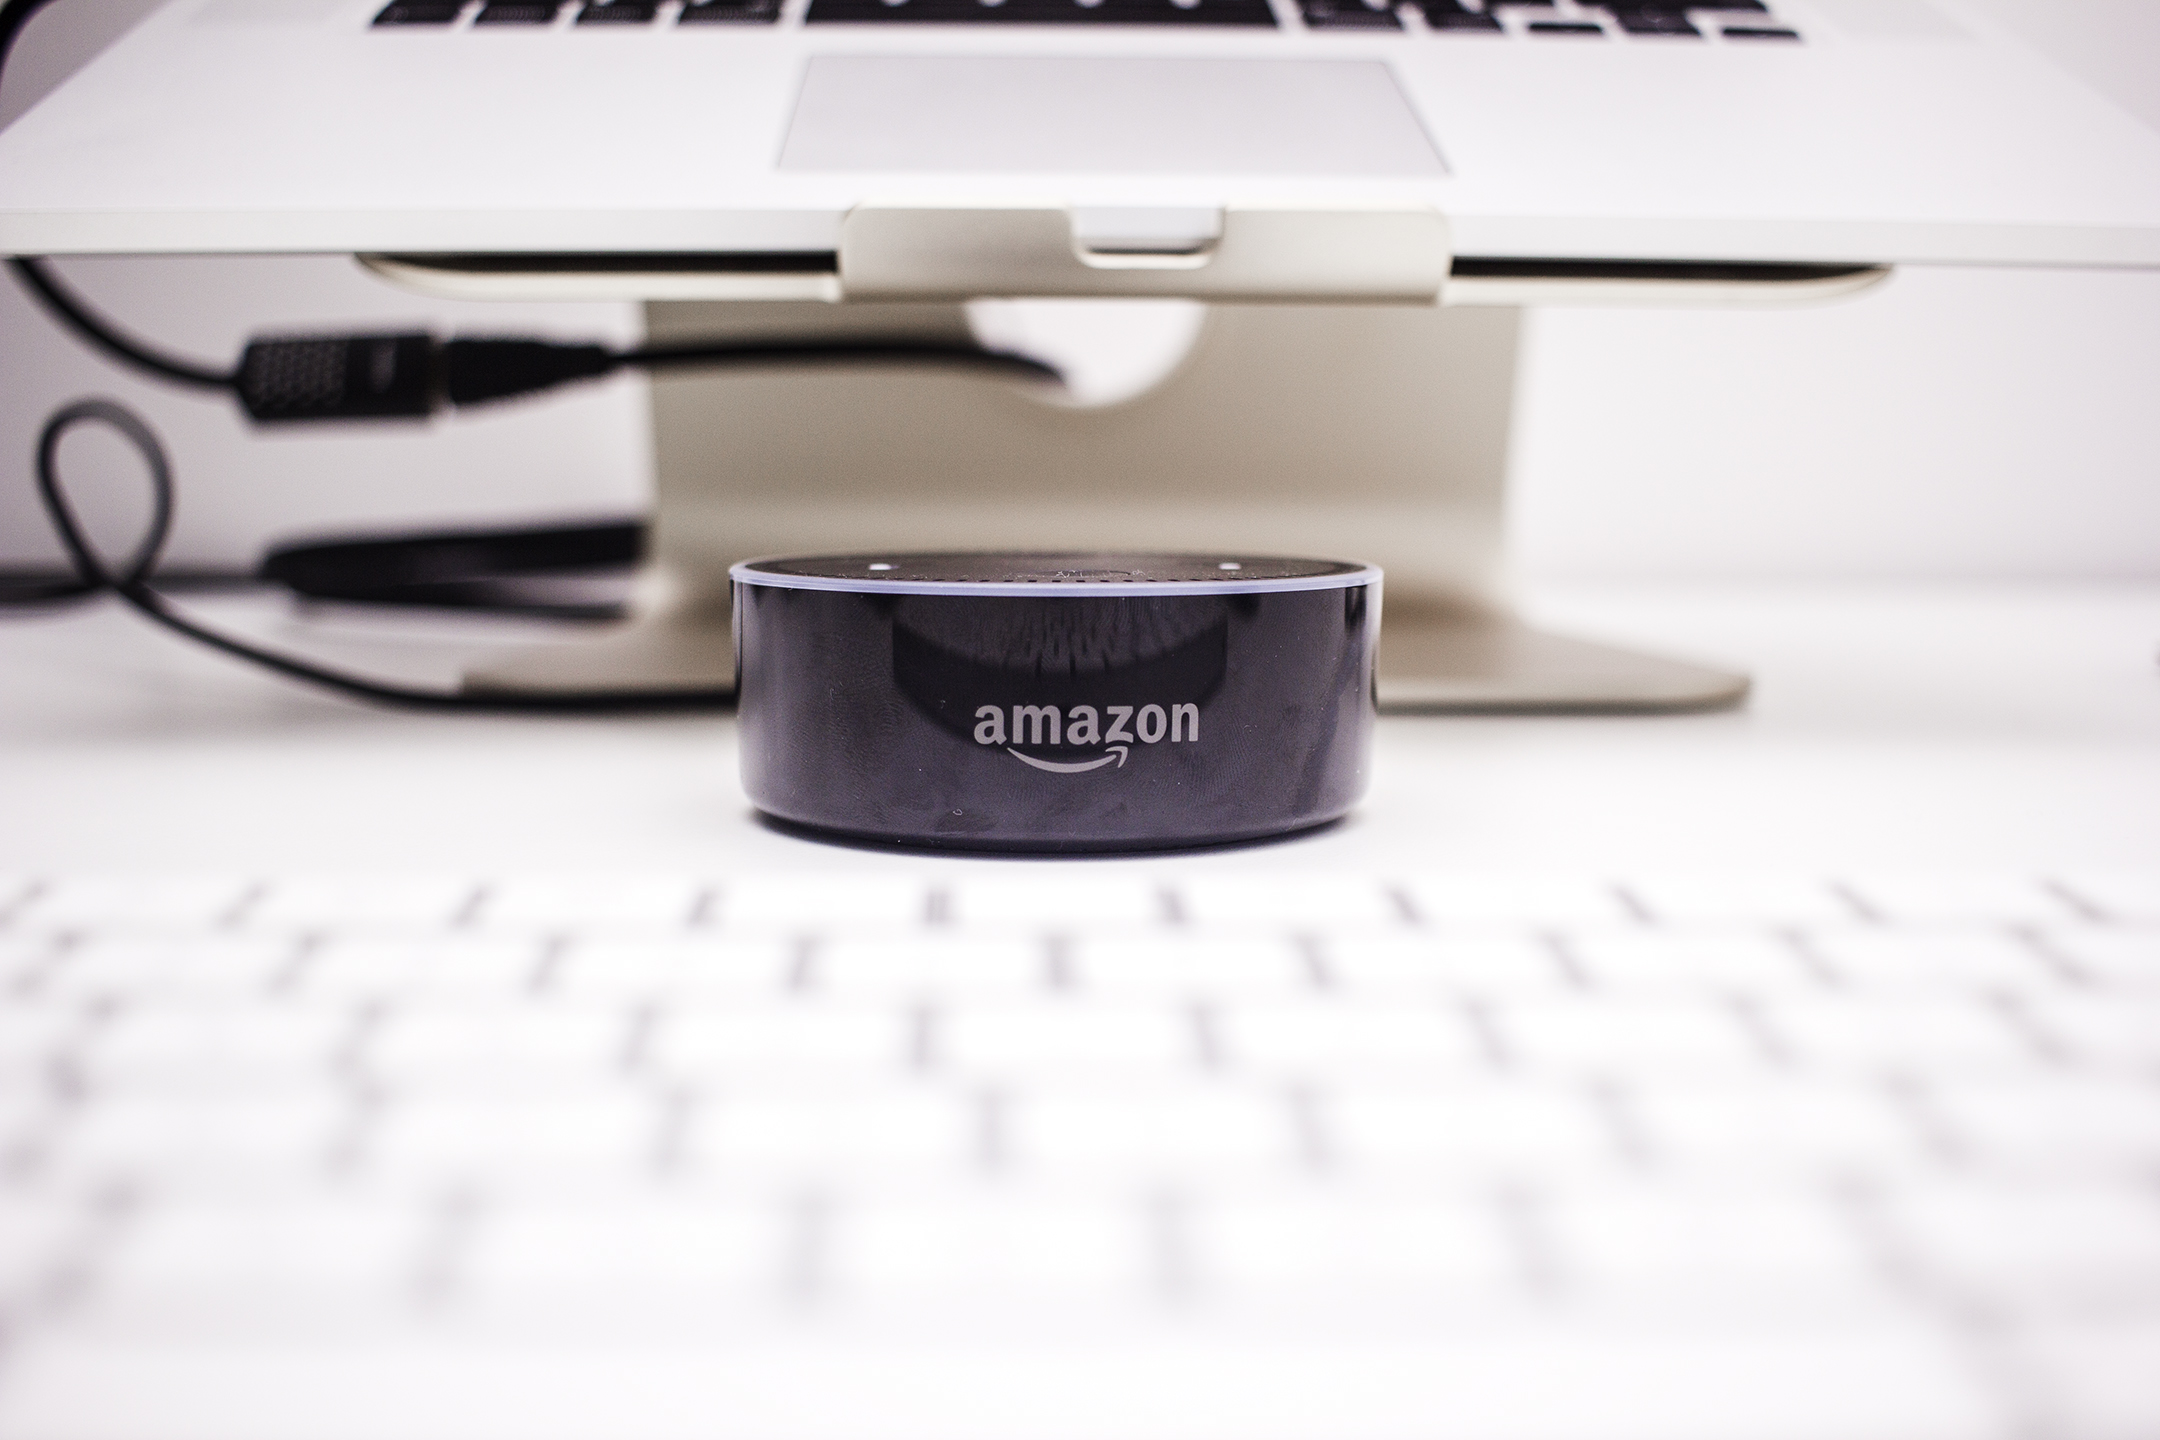 Use Your Amazon Credit for Smart Home Products